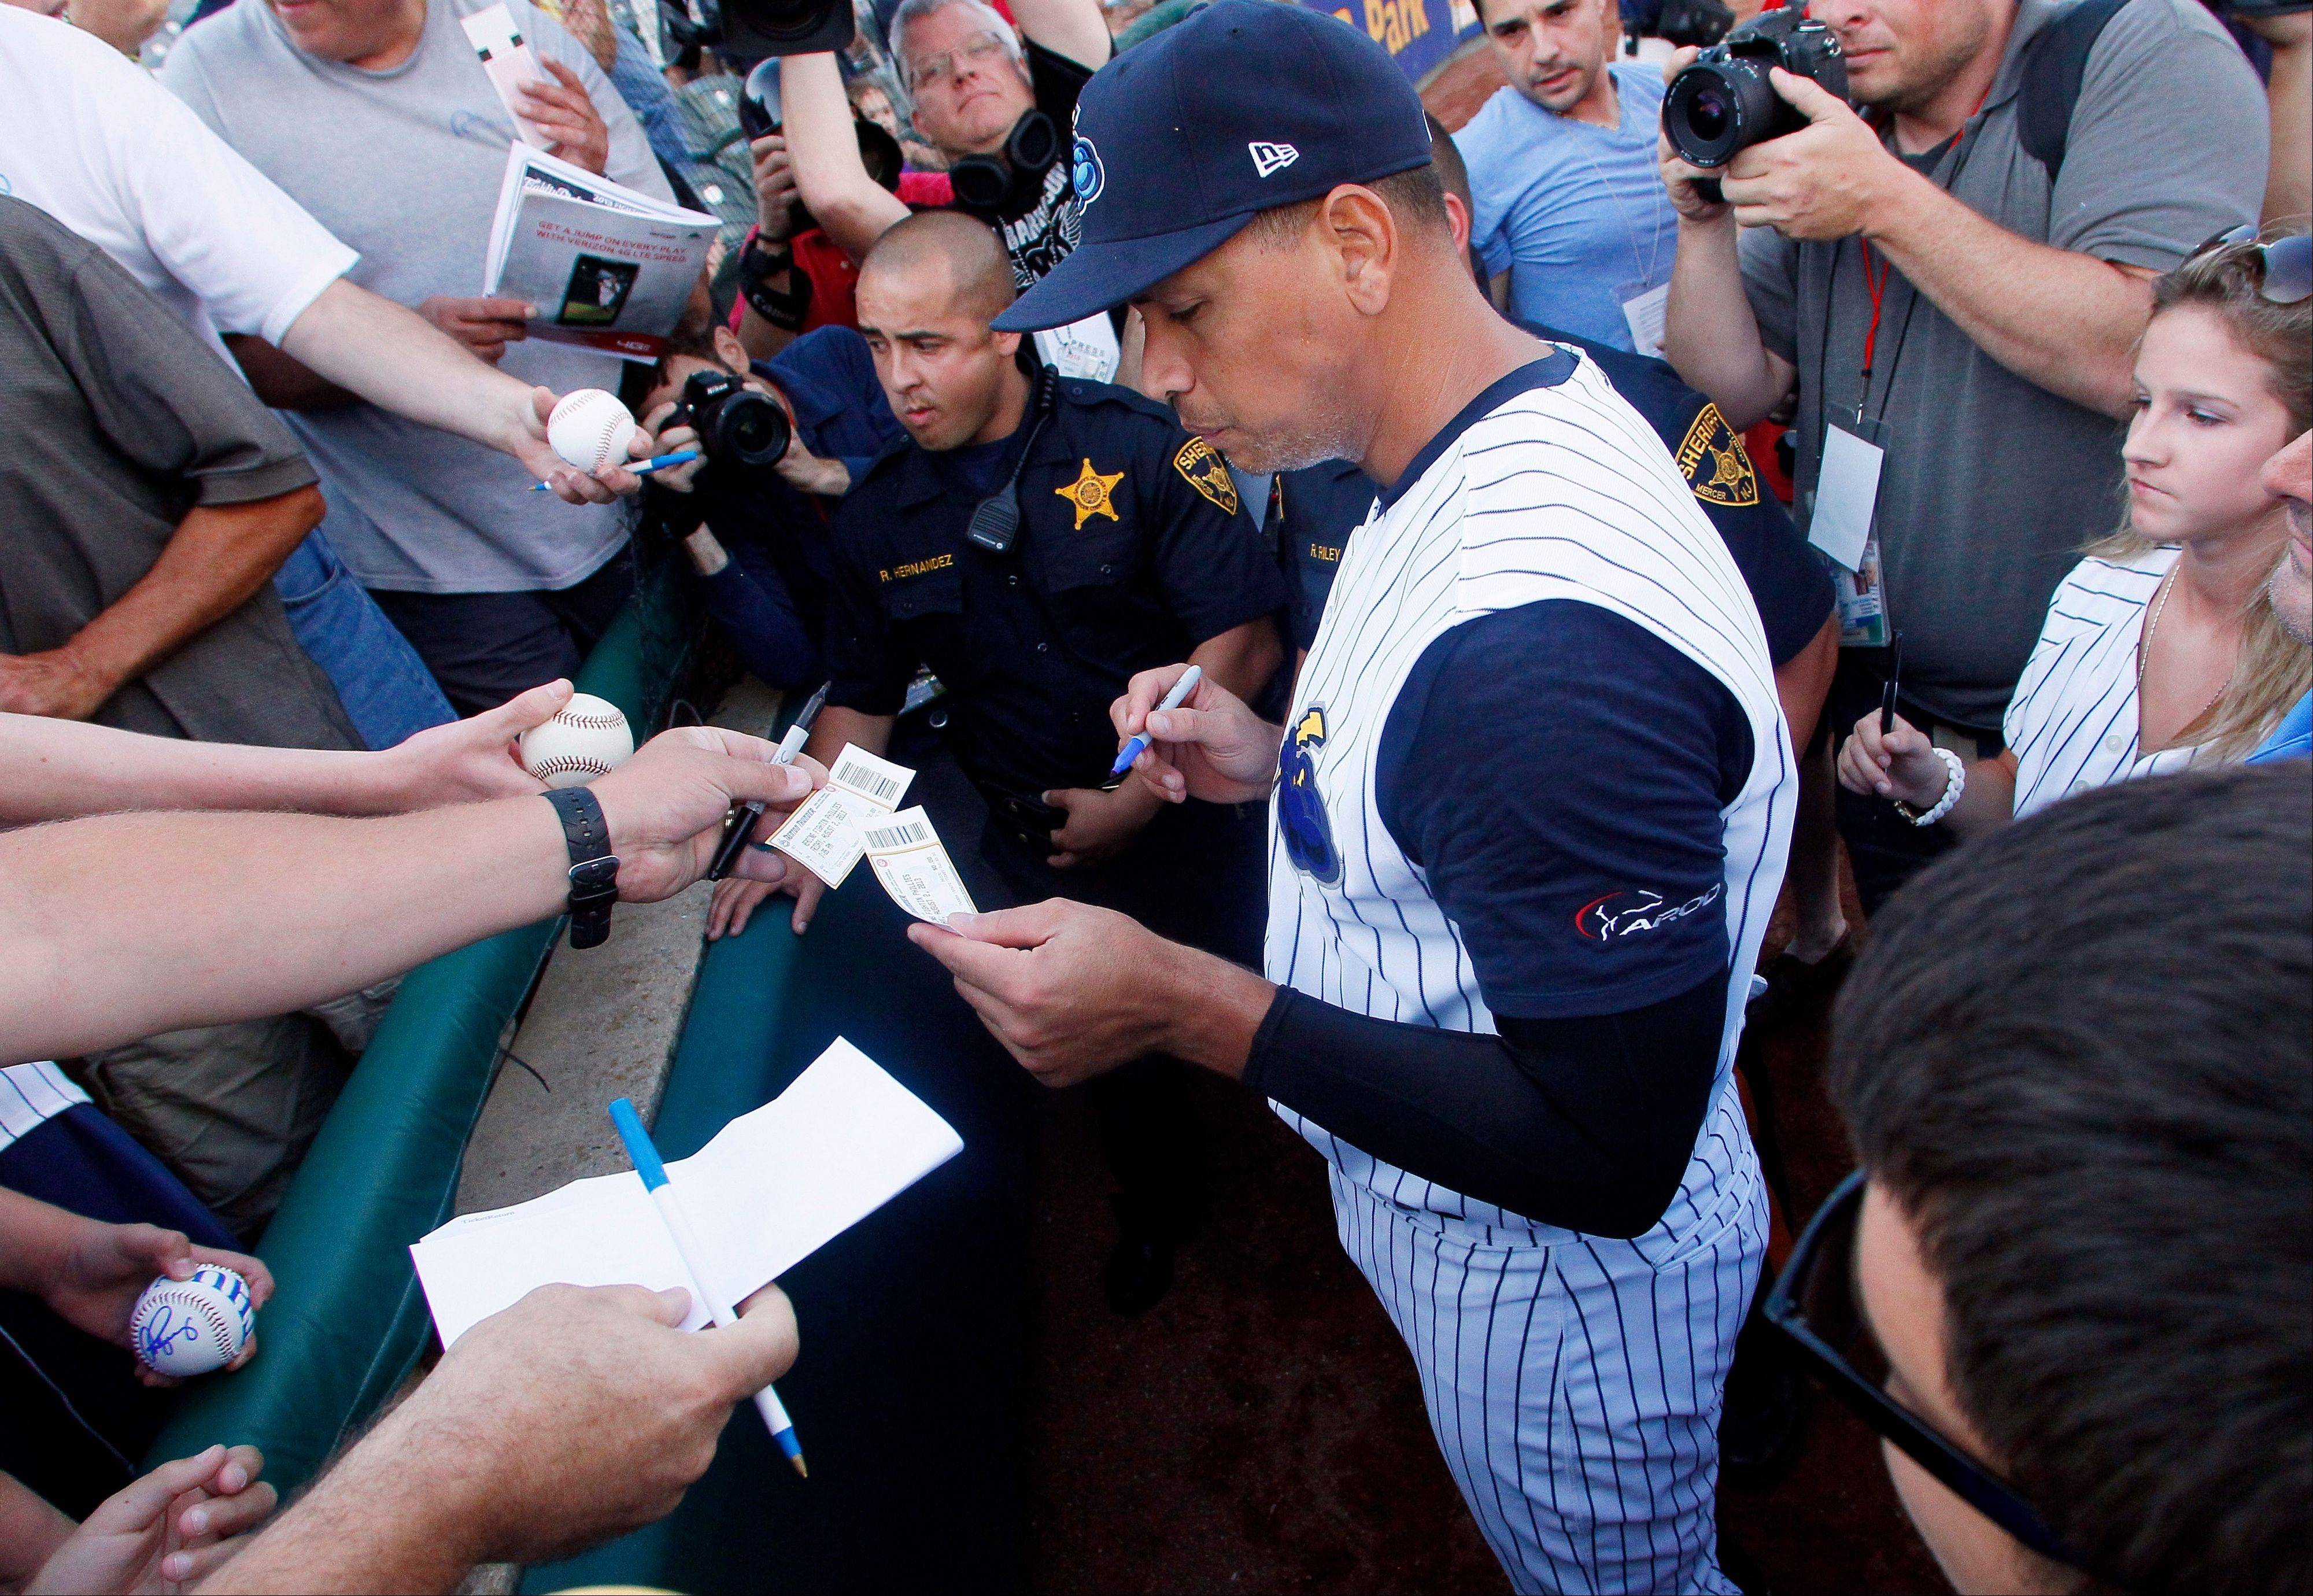 New York Yankees' Alex Rodriguez autographs a ticket stub for a fan before the start of a Class AA baseball game with the Trenton Thunder against the Reading Phillies, Friday, Aug. 2, 2013, in Trenton, N.J.